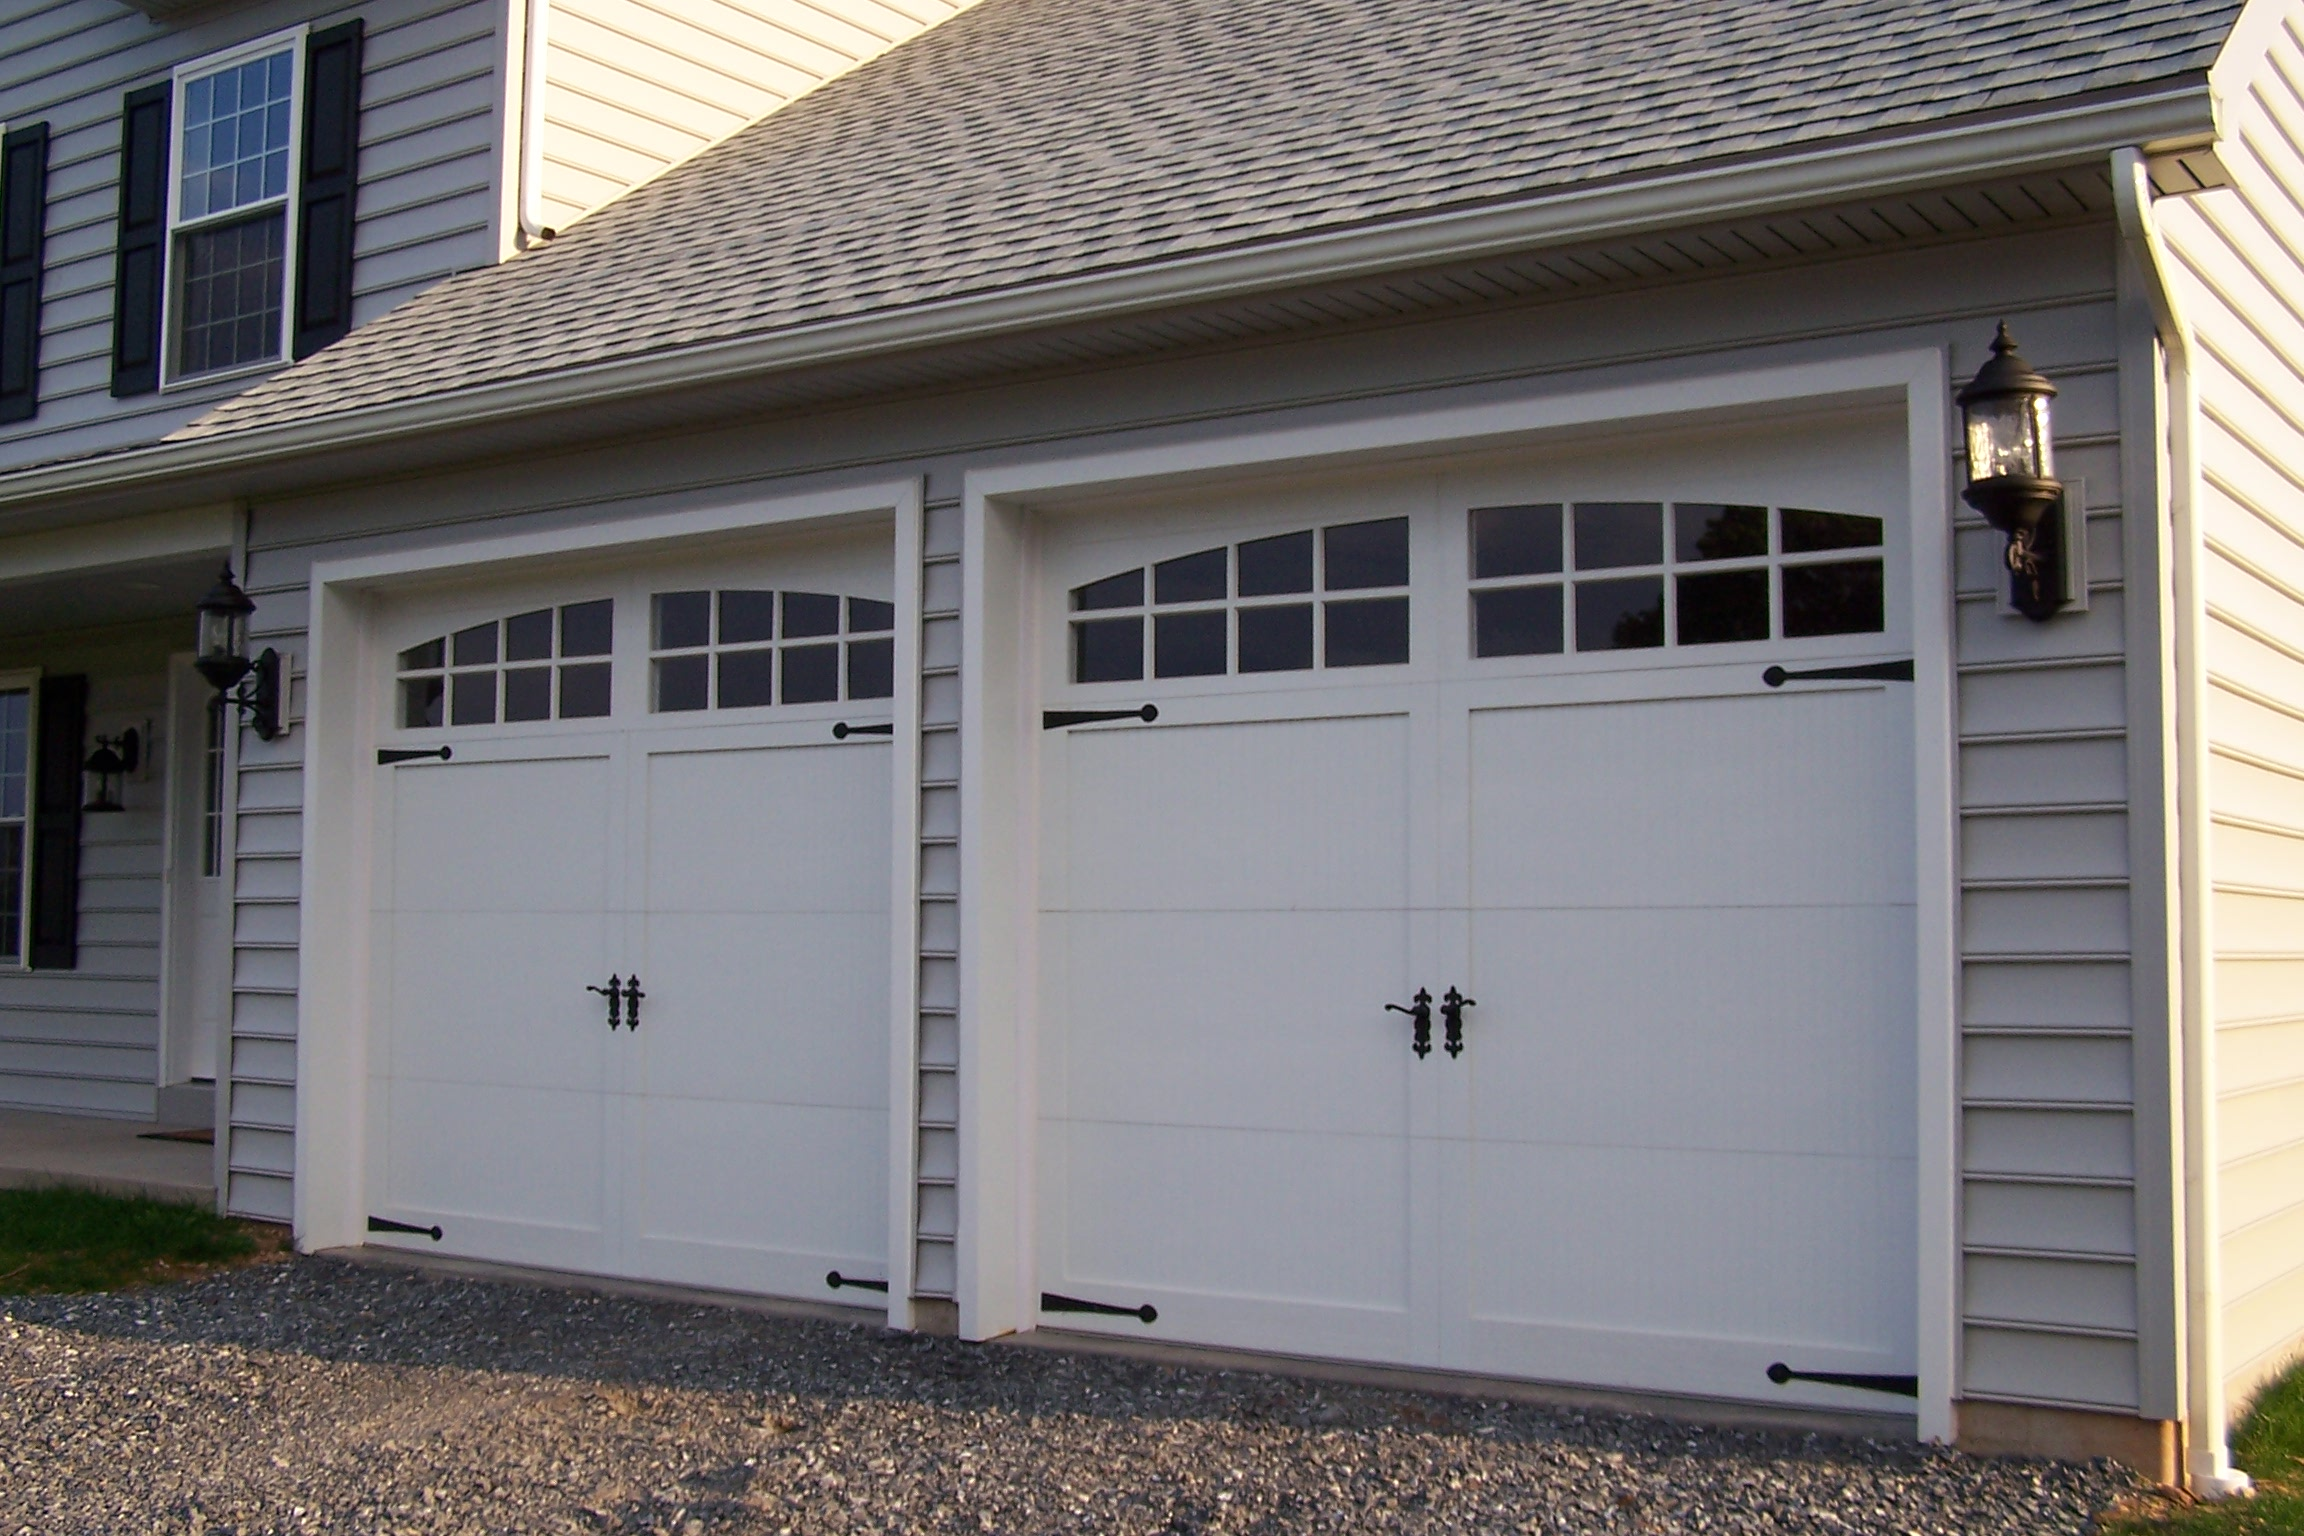 Garage door repairs by s amp t garage doors of northern virginia - Mike S Garage Door Repair In Whitepages Overhead Door Garage Doors